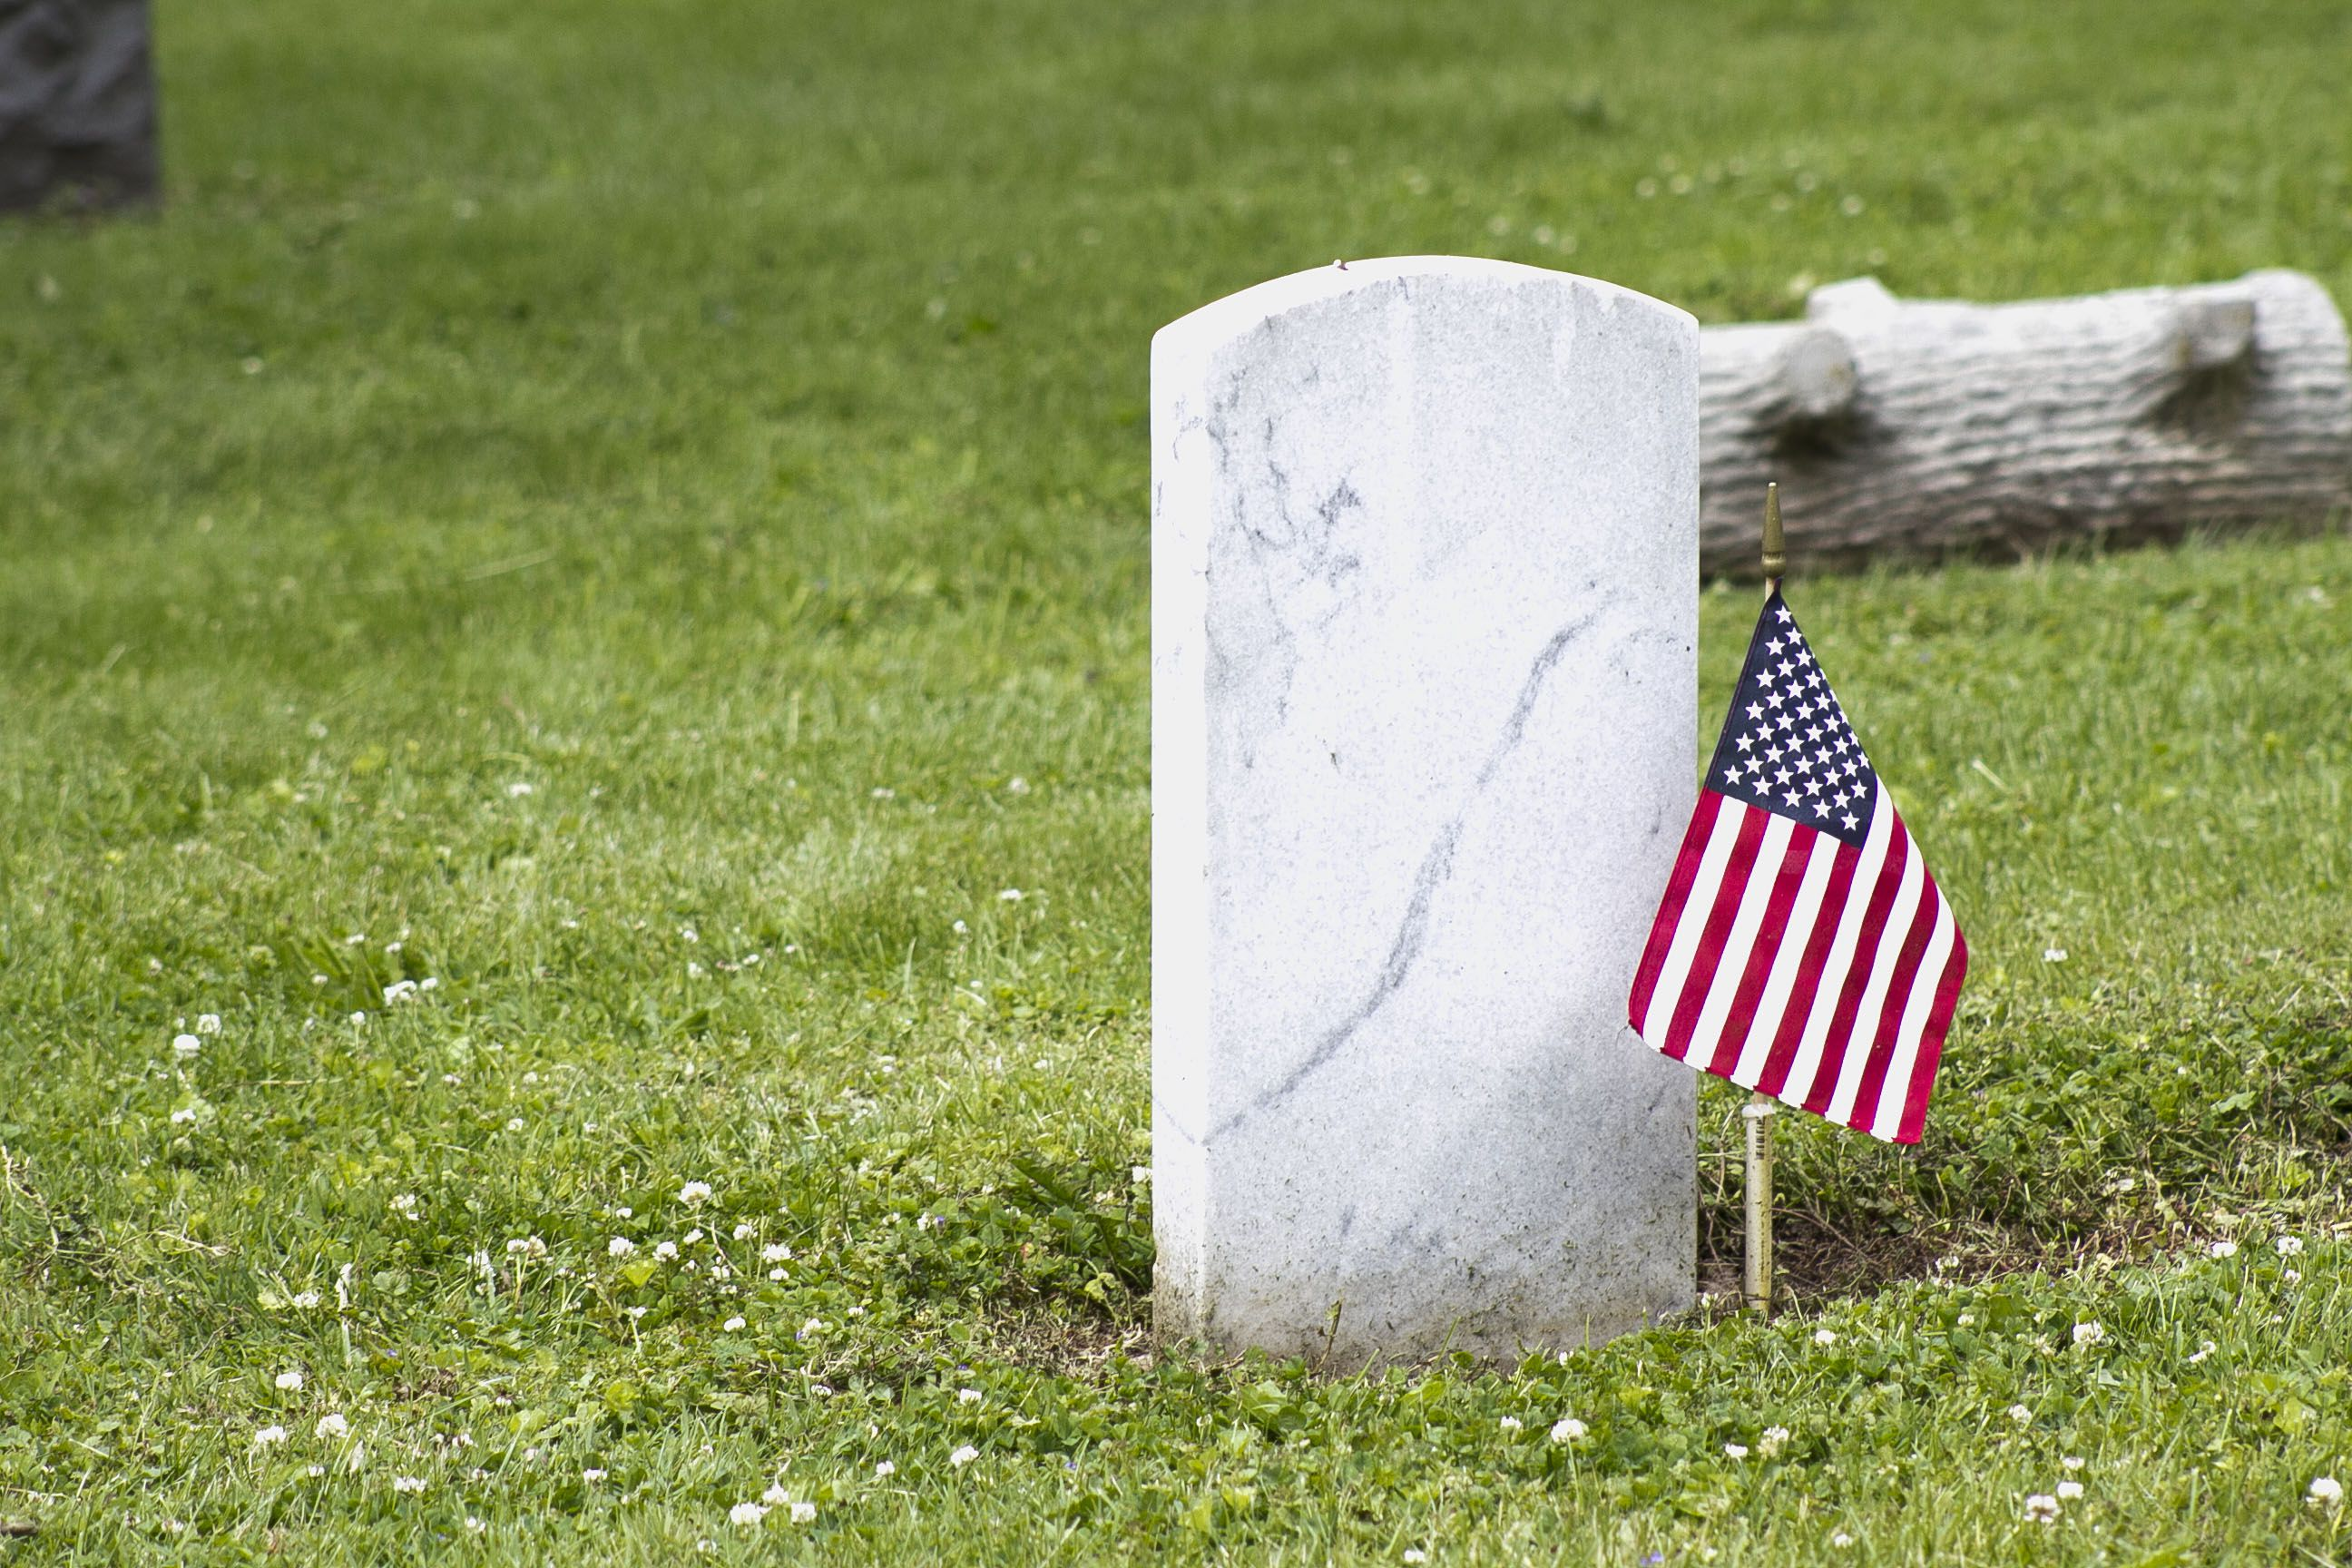 Flags dotted the tombstones in Oswego Township Cemetery Monday morning, as residents filed into the space for the annual Memorial Day ceremony led by American Legion Post 675